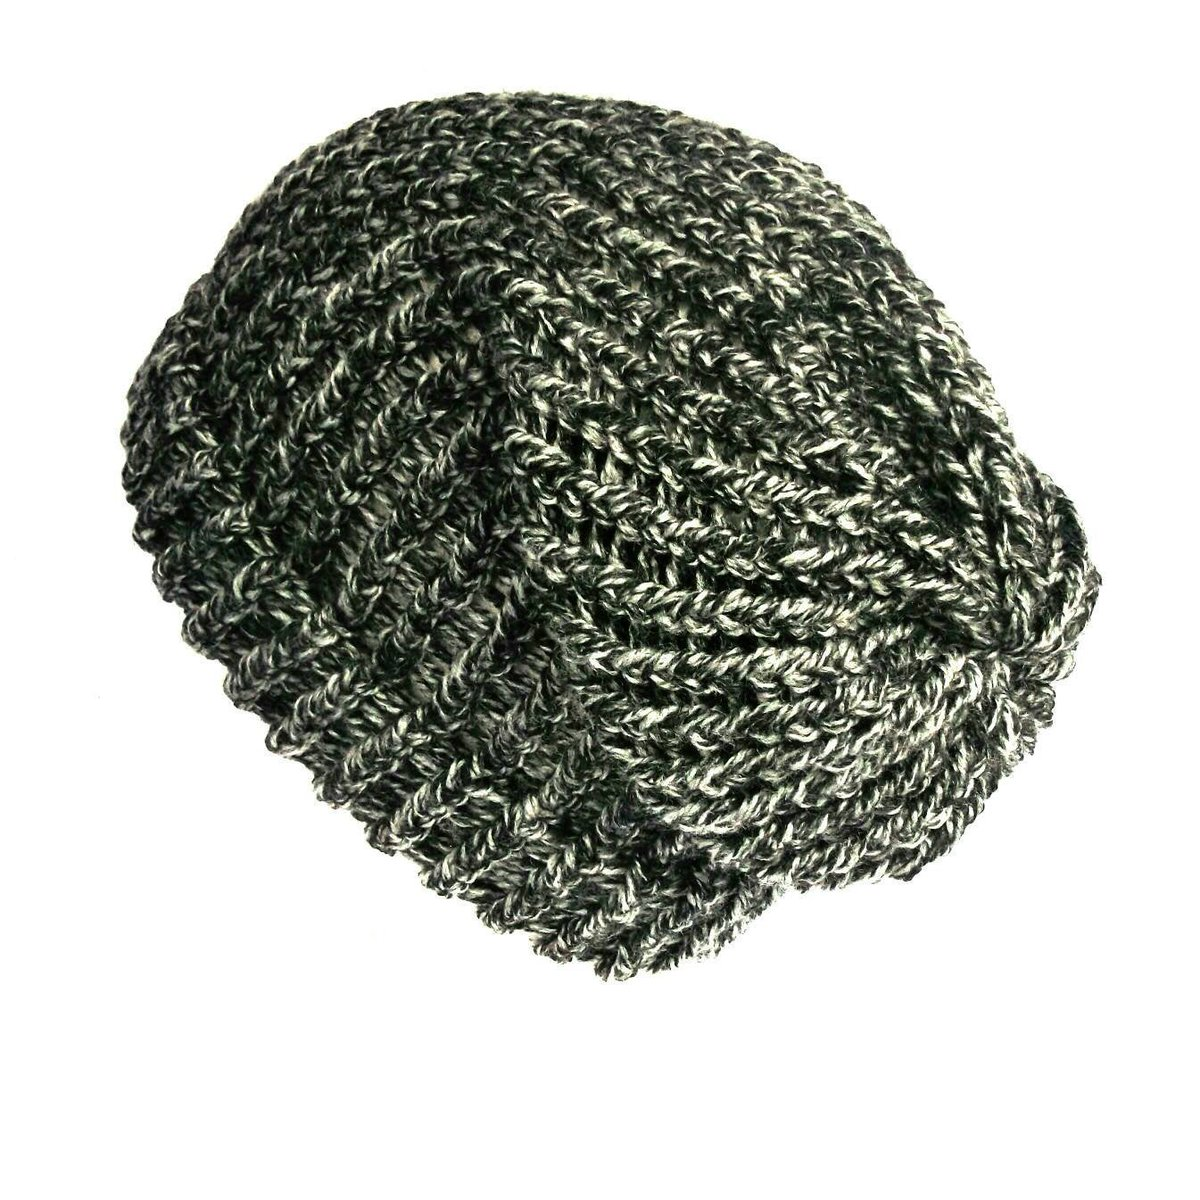 Charcoal slouch beanie hat, vegan wool knit hat, fits adults and teens can be worn as a dreadlock hat, knitted winter hat, 90s grunge hat https://etsy.me/2xqtpLw #Vegan #Handmadehour #Veganfashion #Lelsloom #Etsy #Grunge #Shopping #SlouchBeanieHatpic.twitter.com/iNDIjGig4c